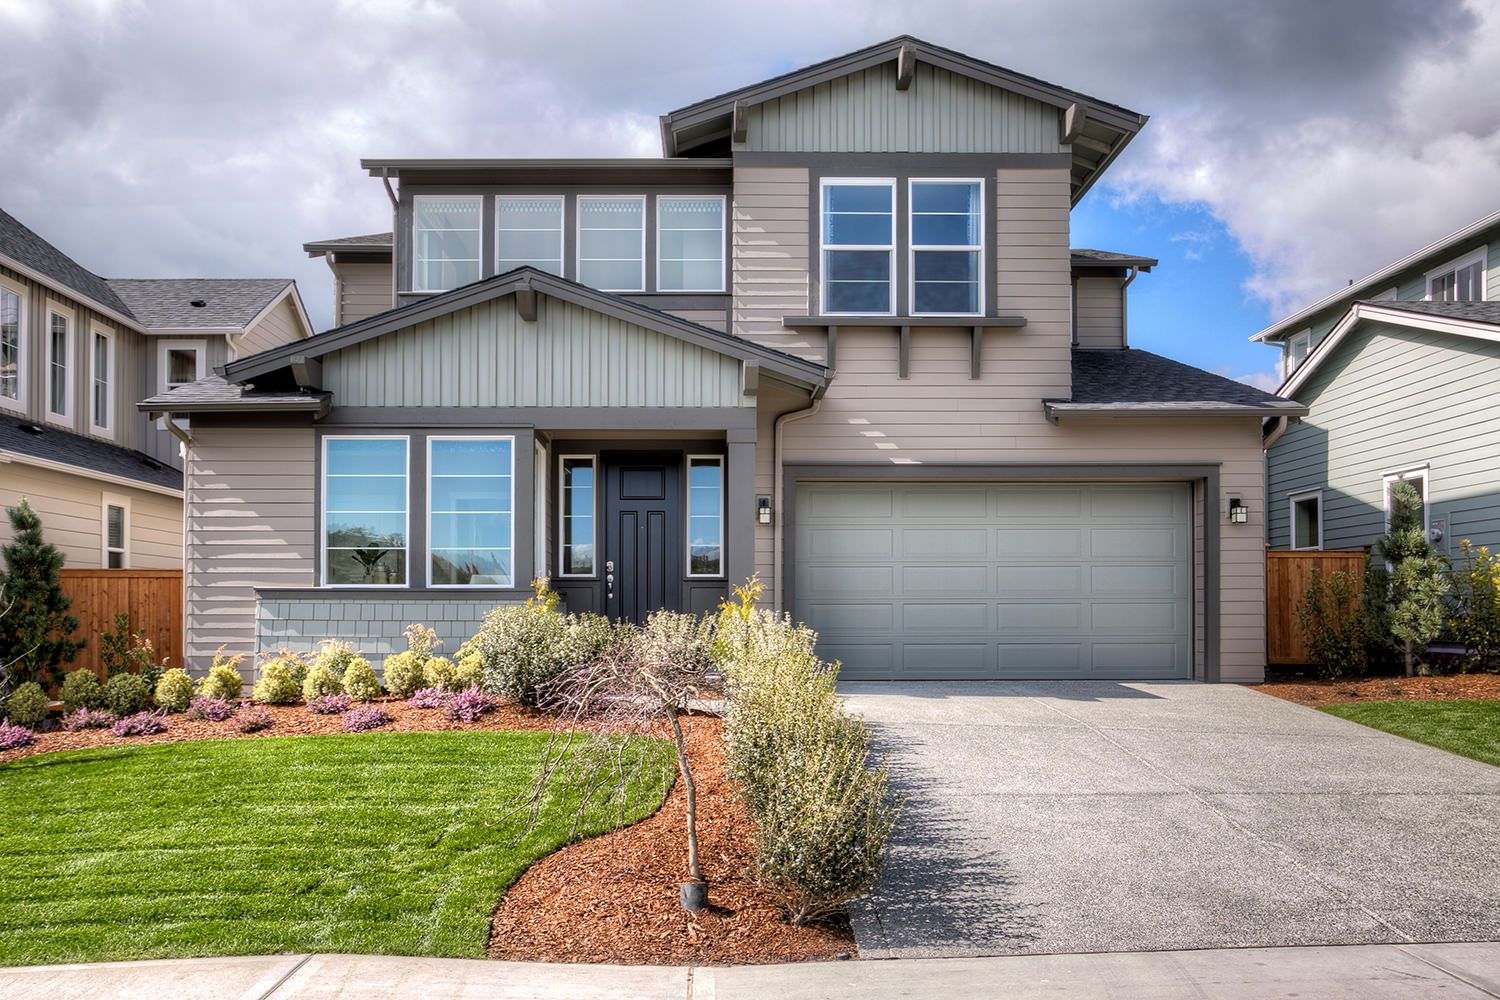 Single Family for Sale at Mountain Aire - Residence M-280 18758 Ne Colwood Ave Poulsbo, Washington 98370 United States